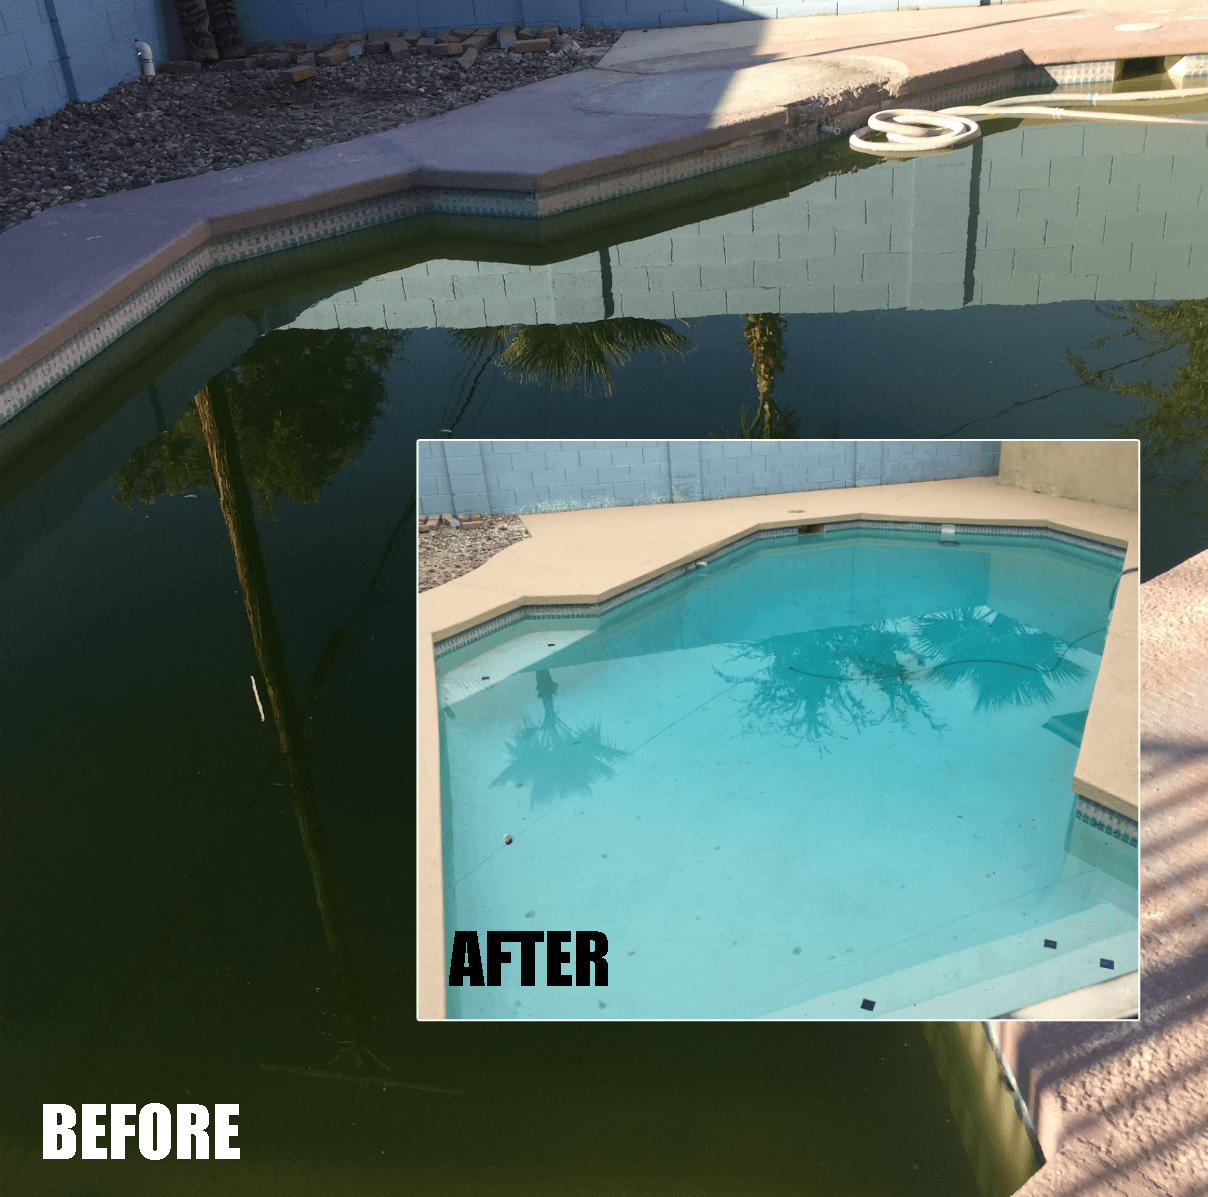 dec pool project Before AFTER